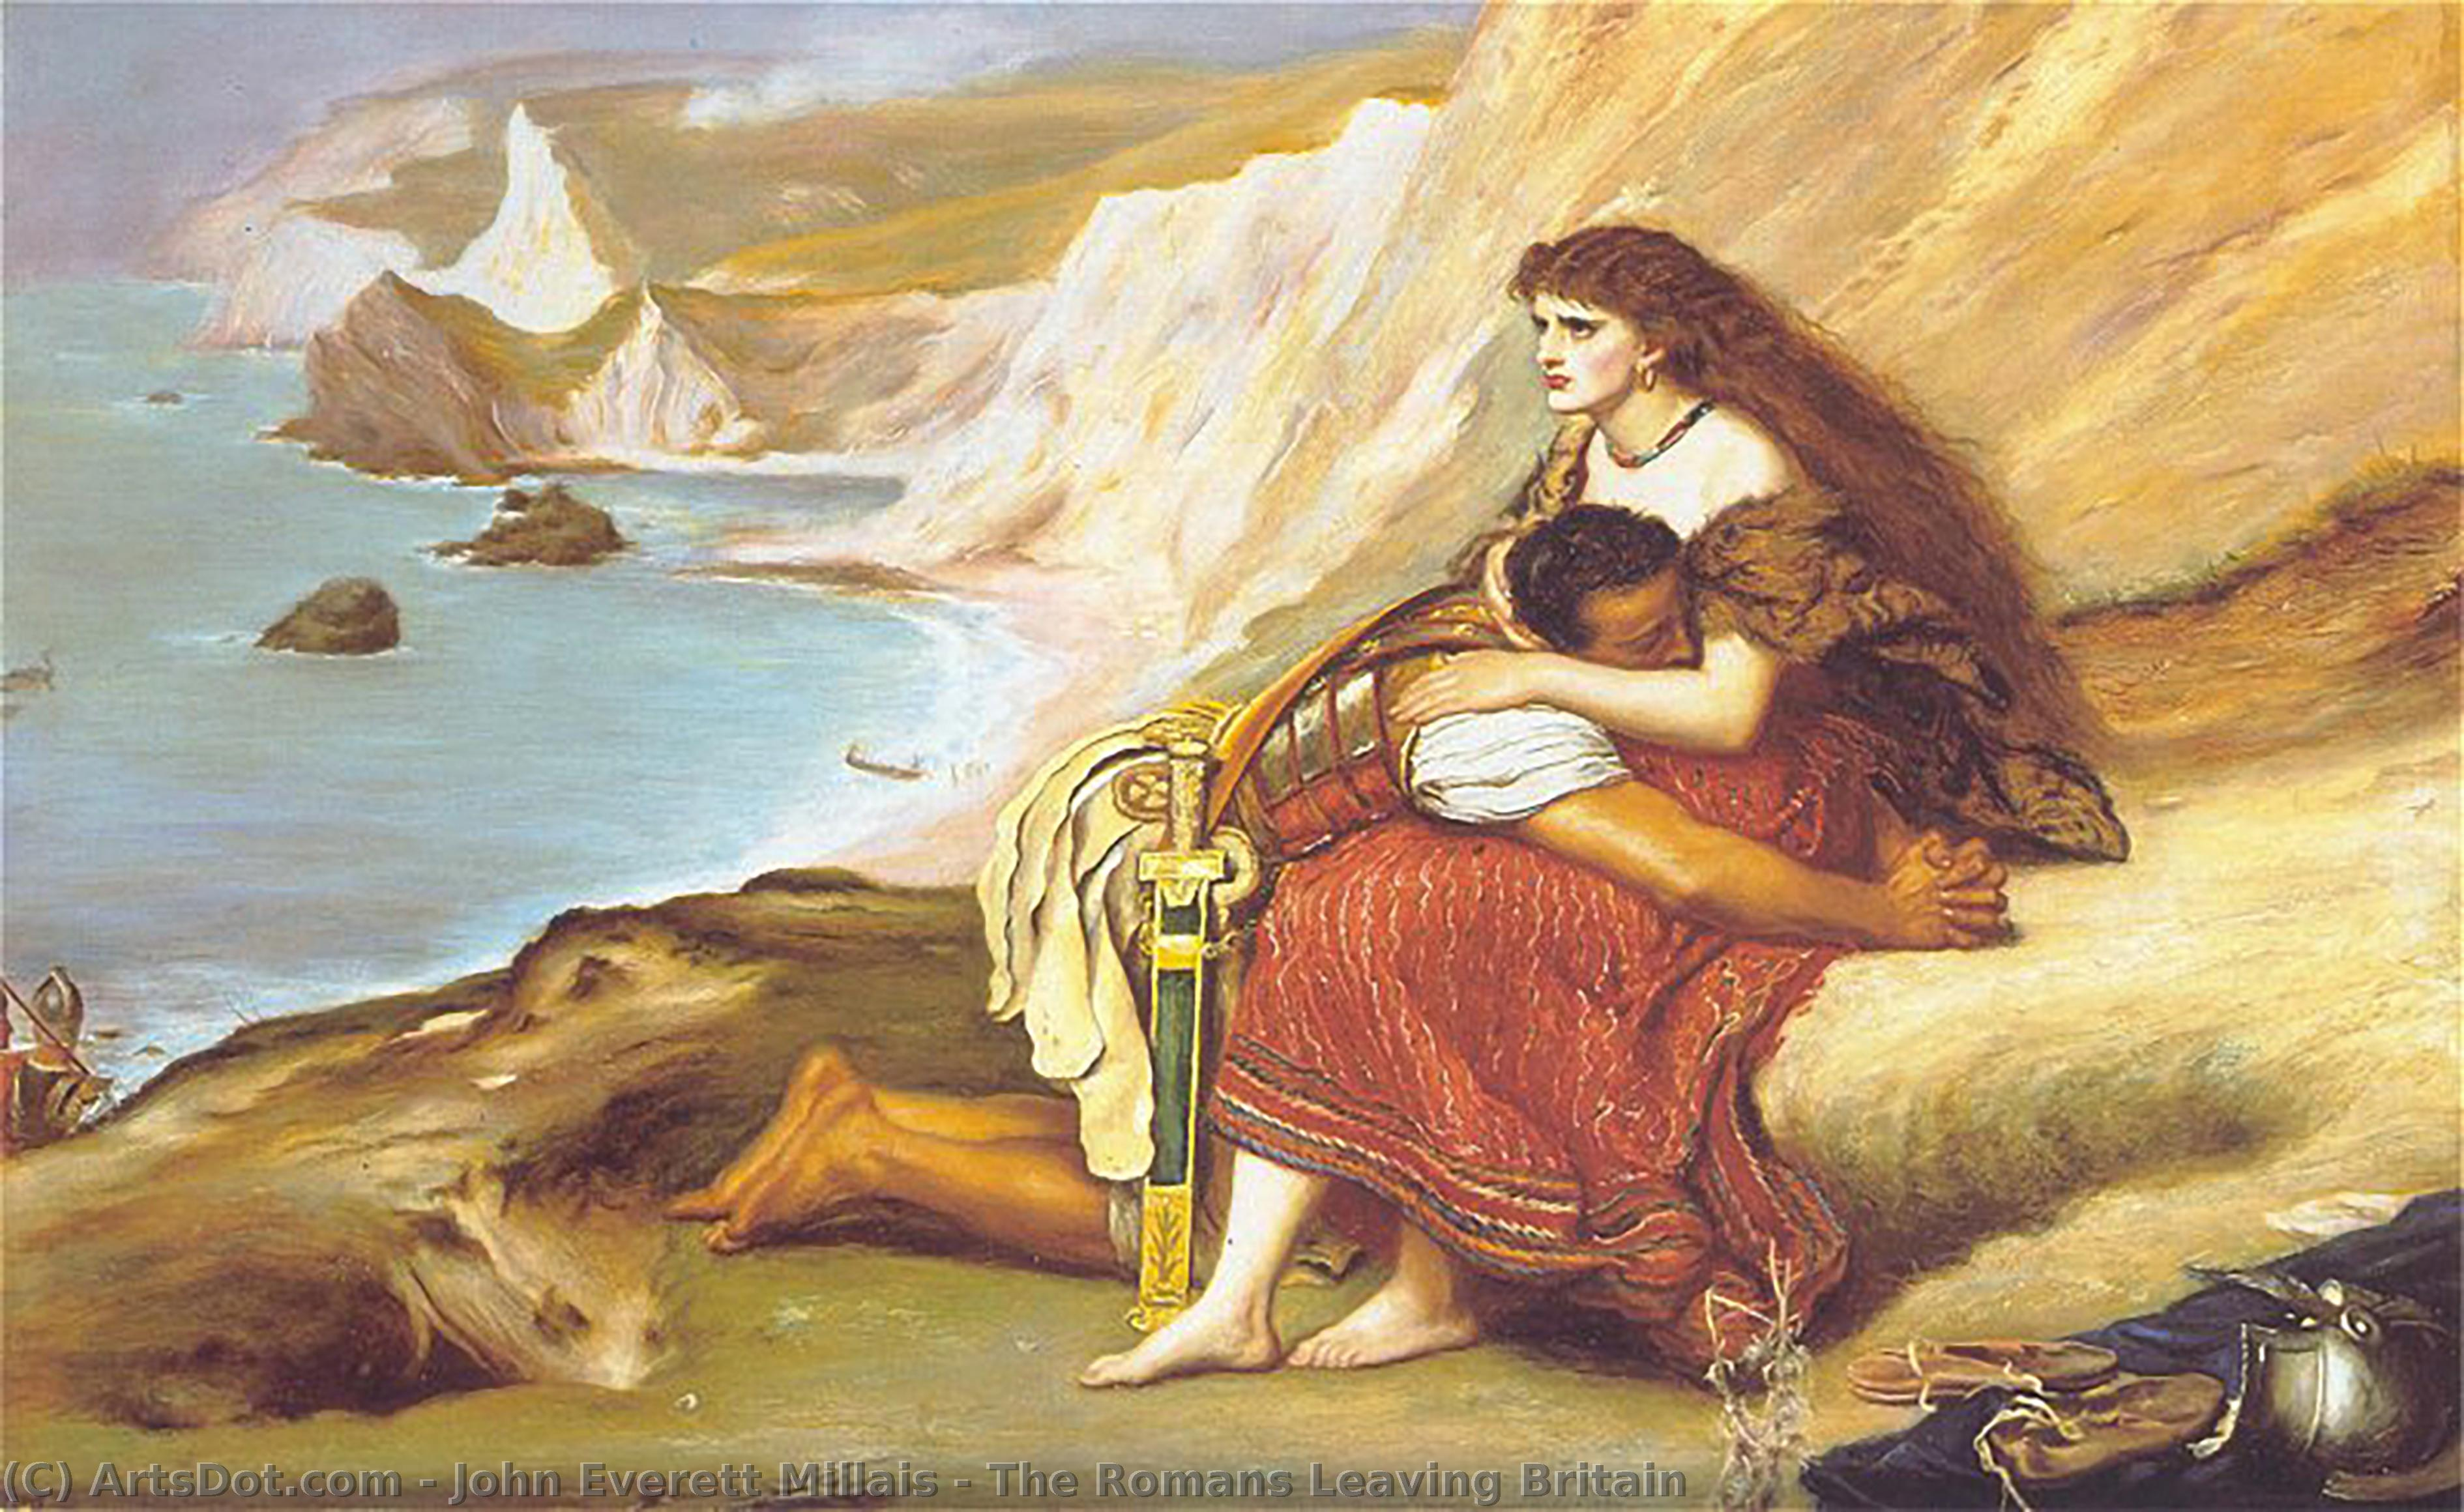 Wikioo.org - The Encyclopedia of Fine Arts - Painting, Artwork by John Everett Millais - The Romans Leaving Britain